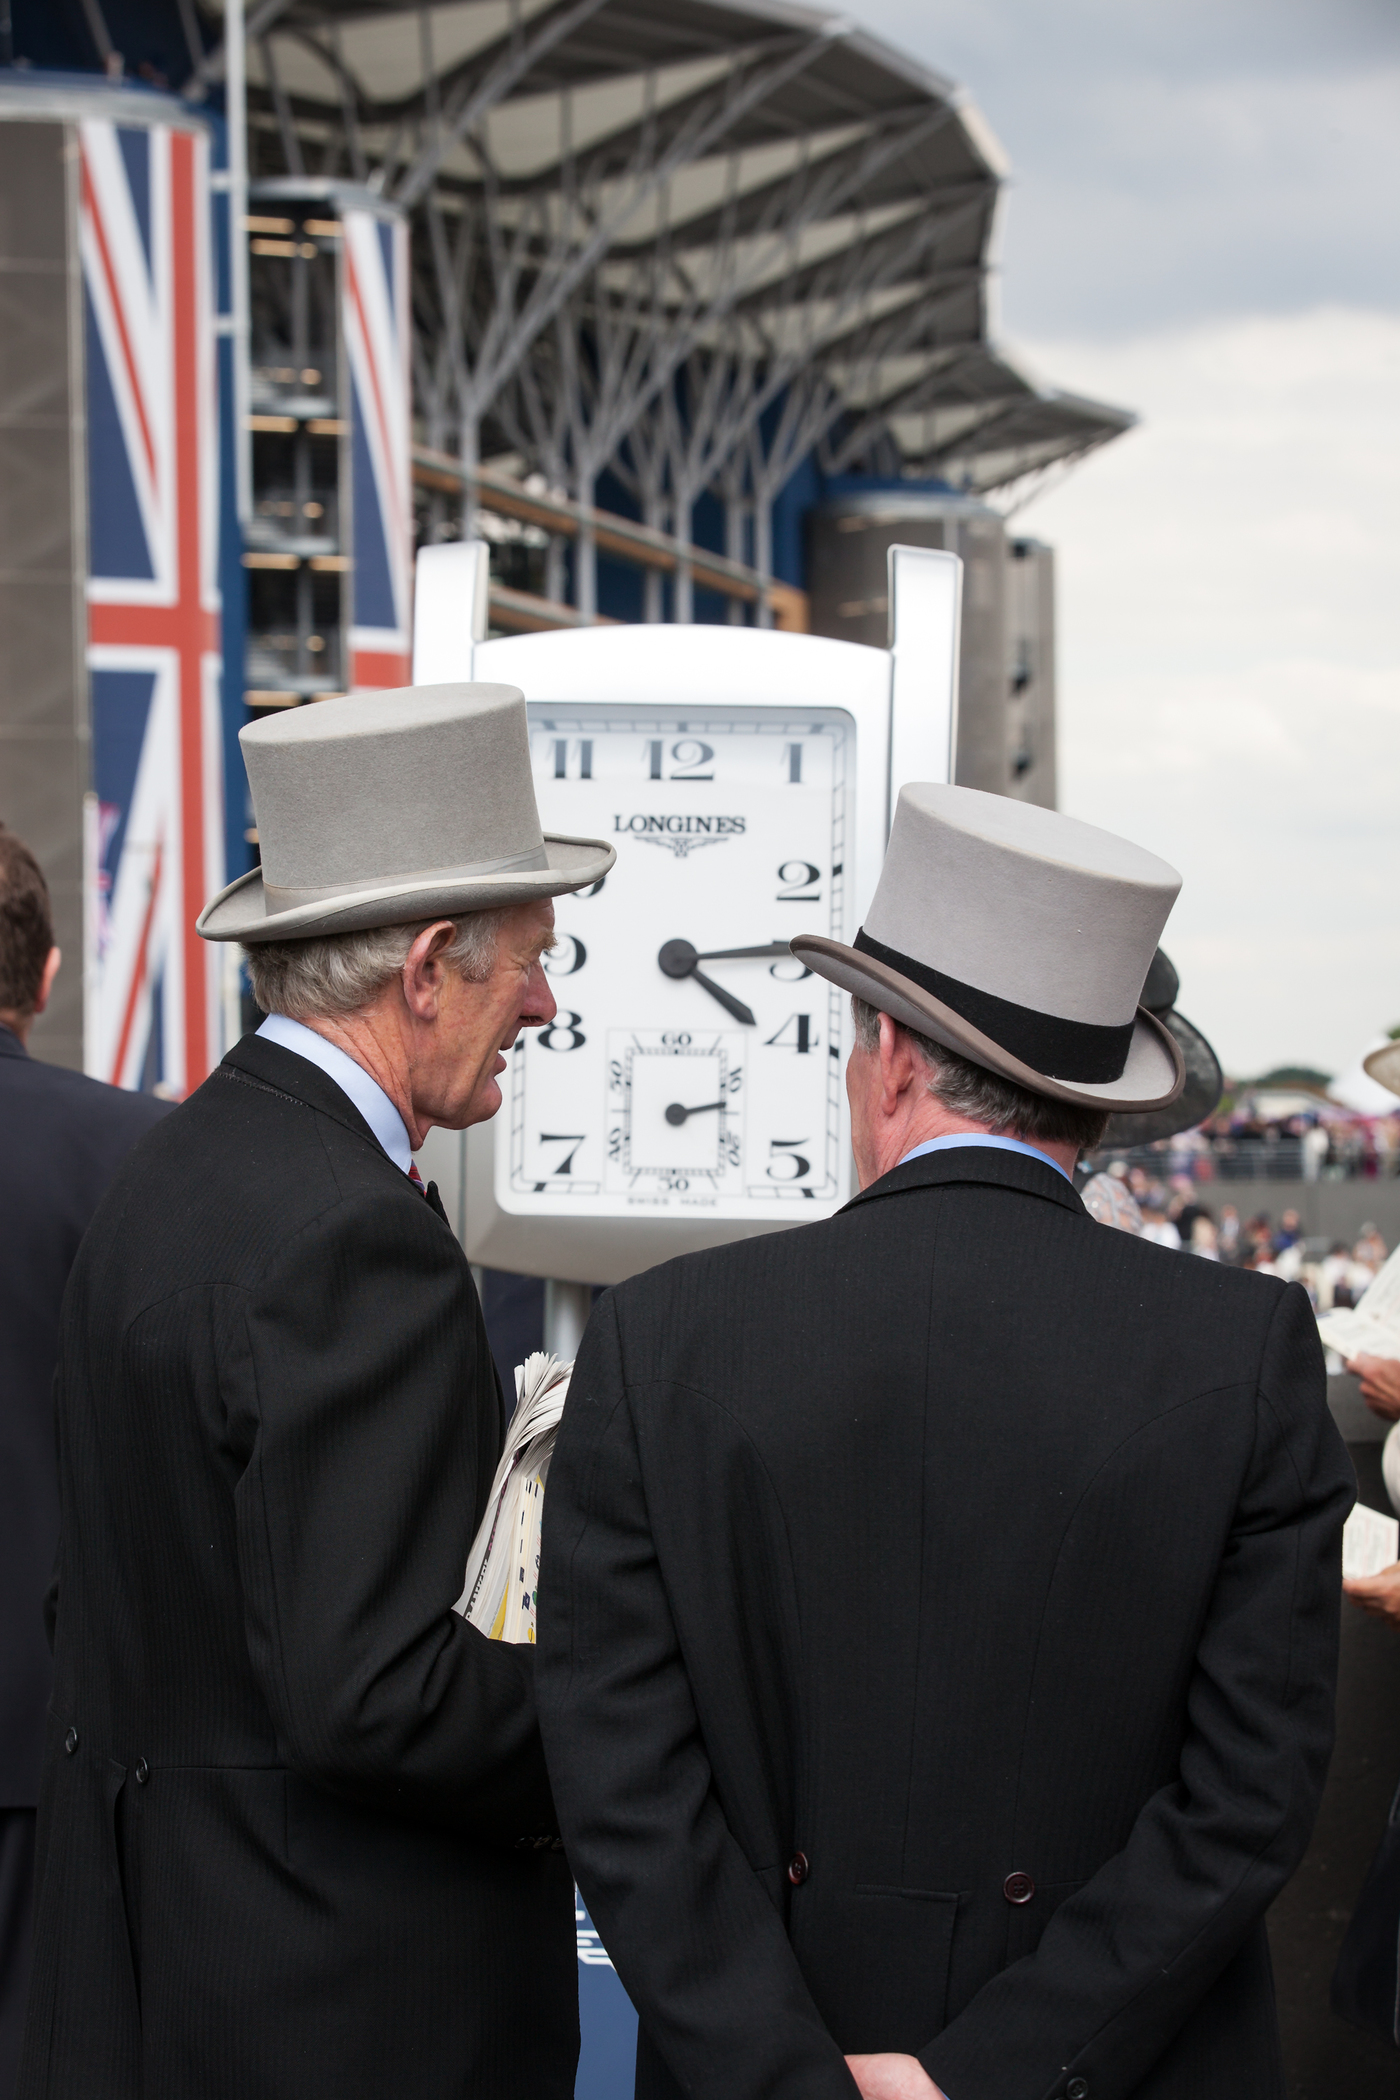 Longines Flat Racing Event: Royal Ascot 2012 - An elegant day at the races with Longines Ambassador of Elegance Ingeborga Dapkunaite 3